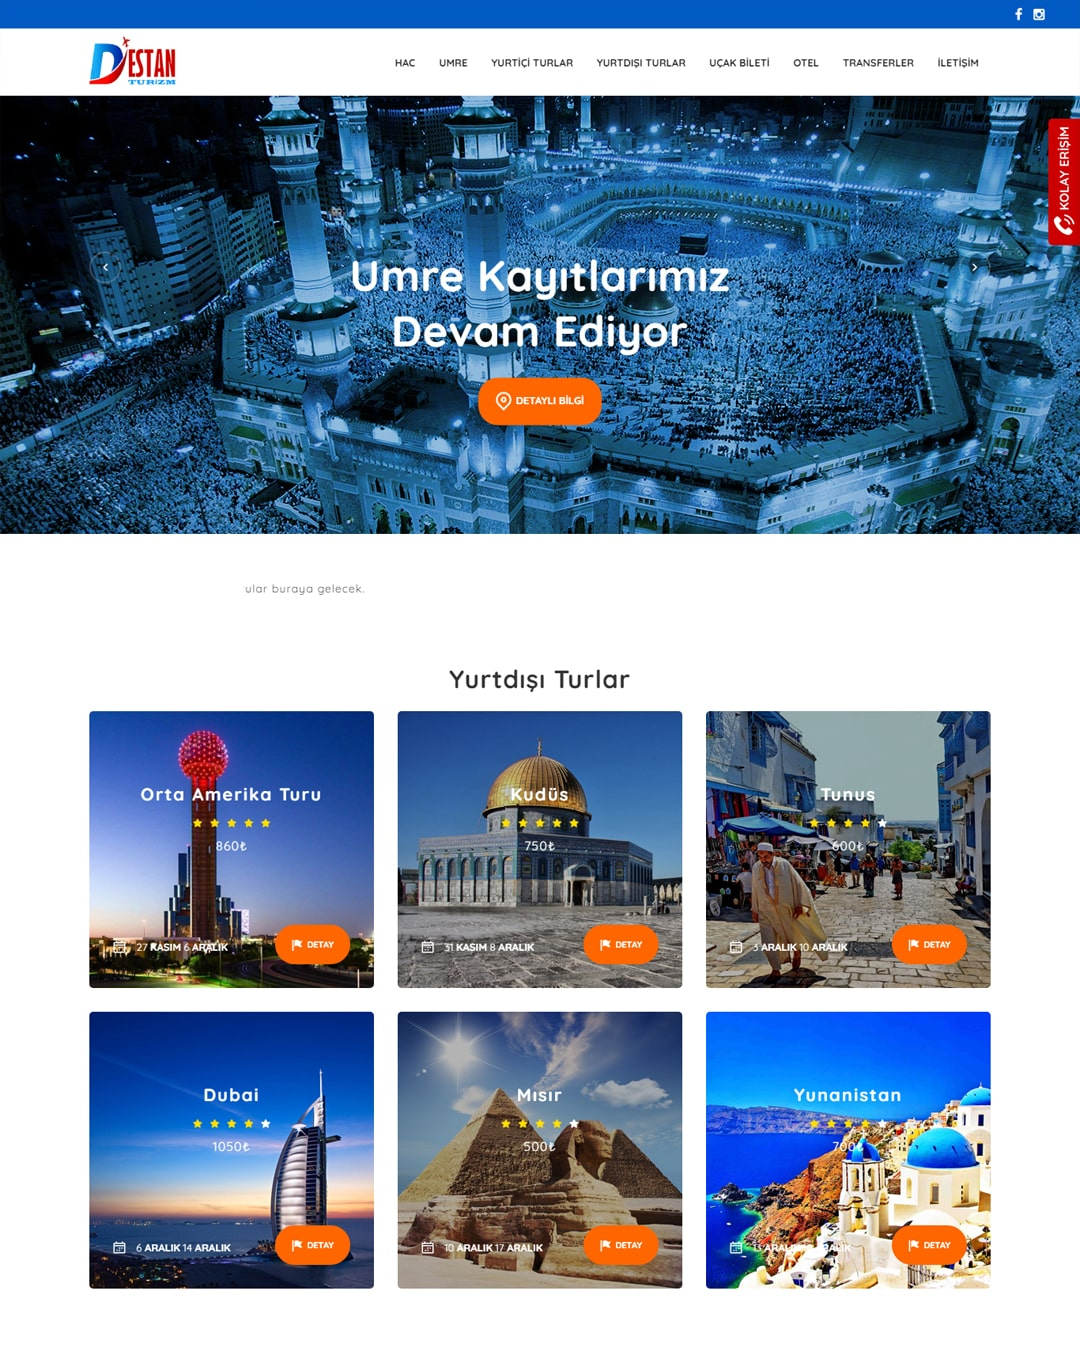 Malatya Destan Tour Web Site